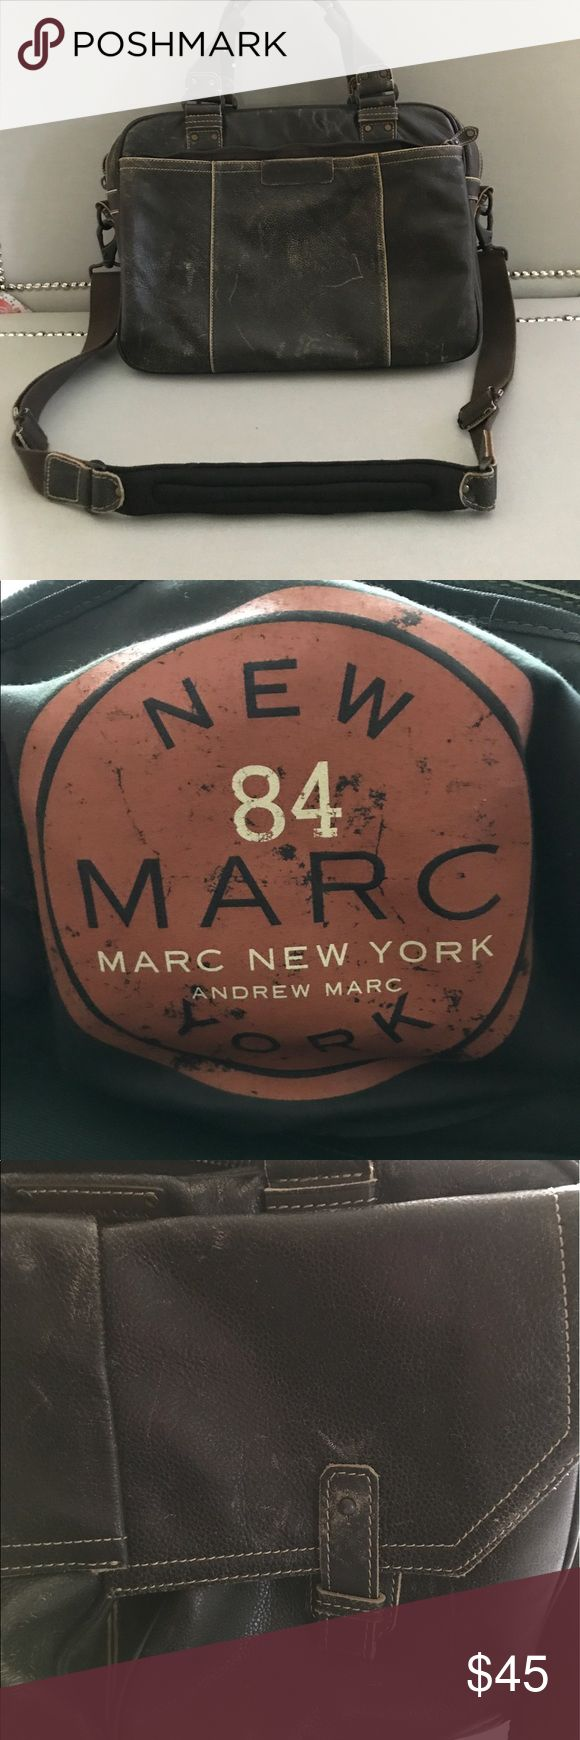 """Andrew Marc NY Bomber Distressed Laptop Bag Andrew Marc Distressed Leather Briefcase /Laptop bag. Gently used in great condition. Can be worn as a crossbody. 16""""x12""""x5 1/2 Andrew Marc Bags Laptop Bags"""